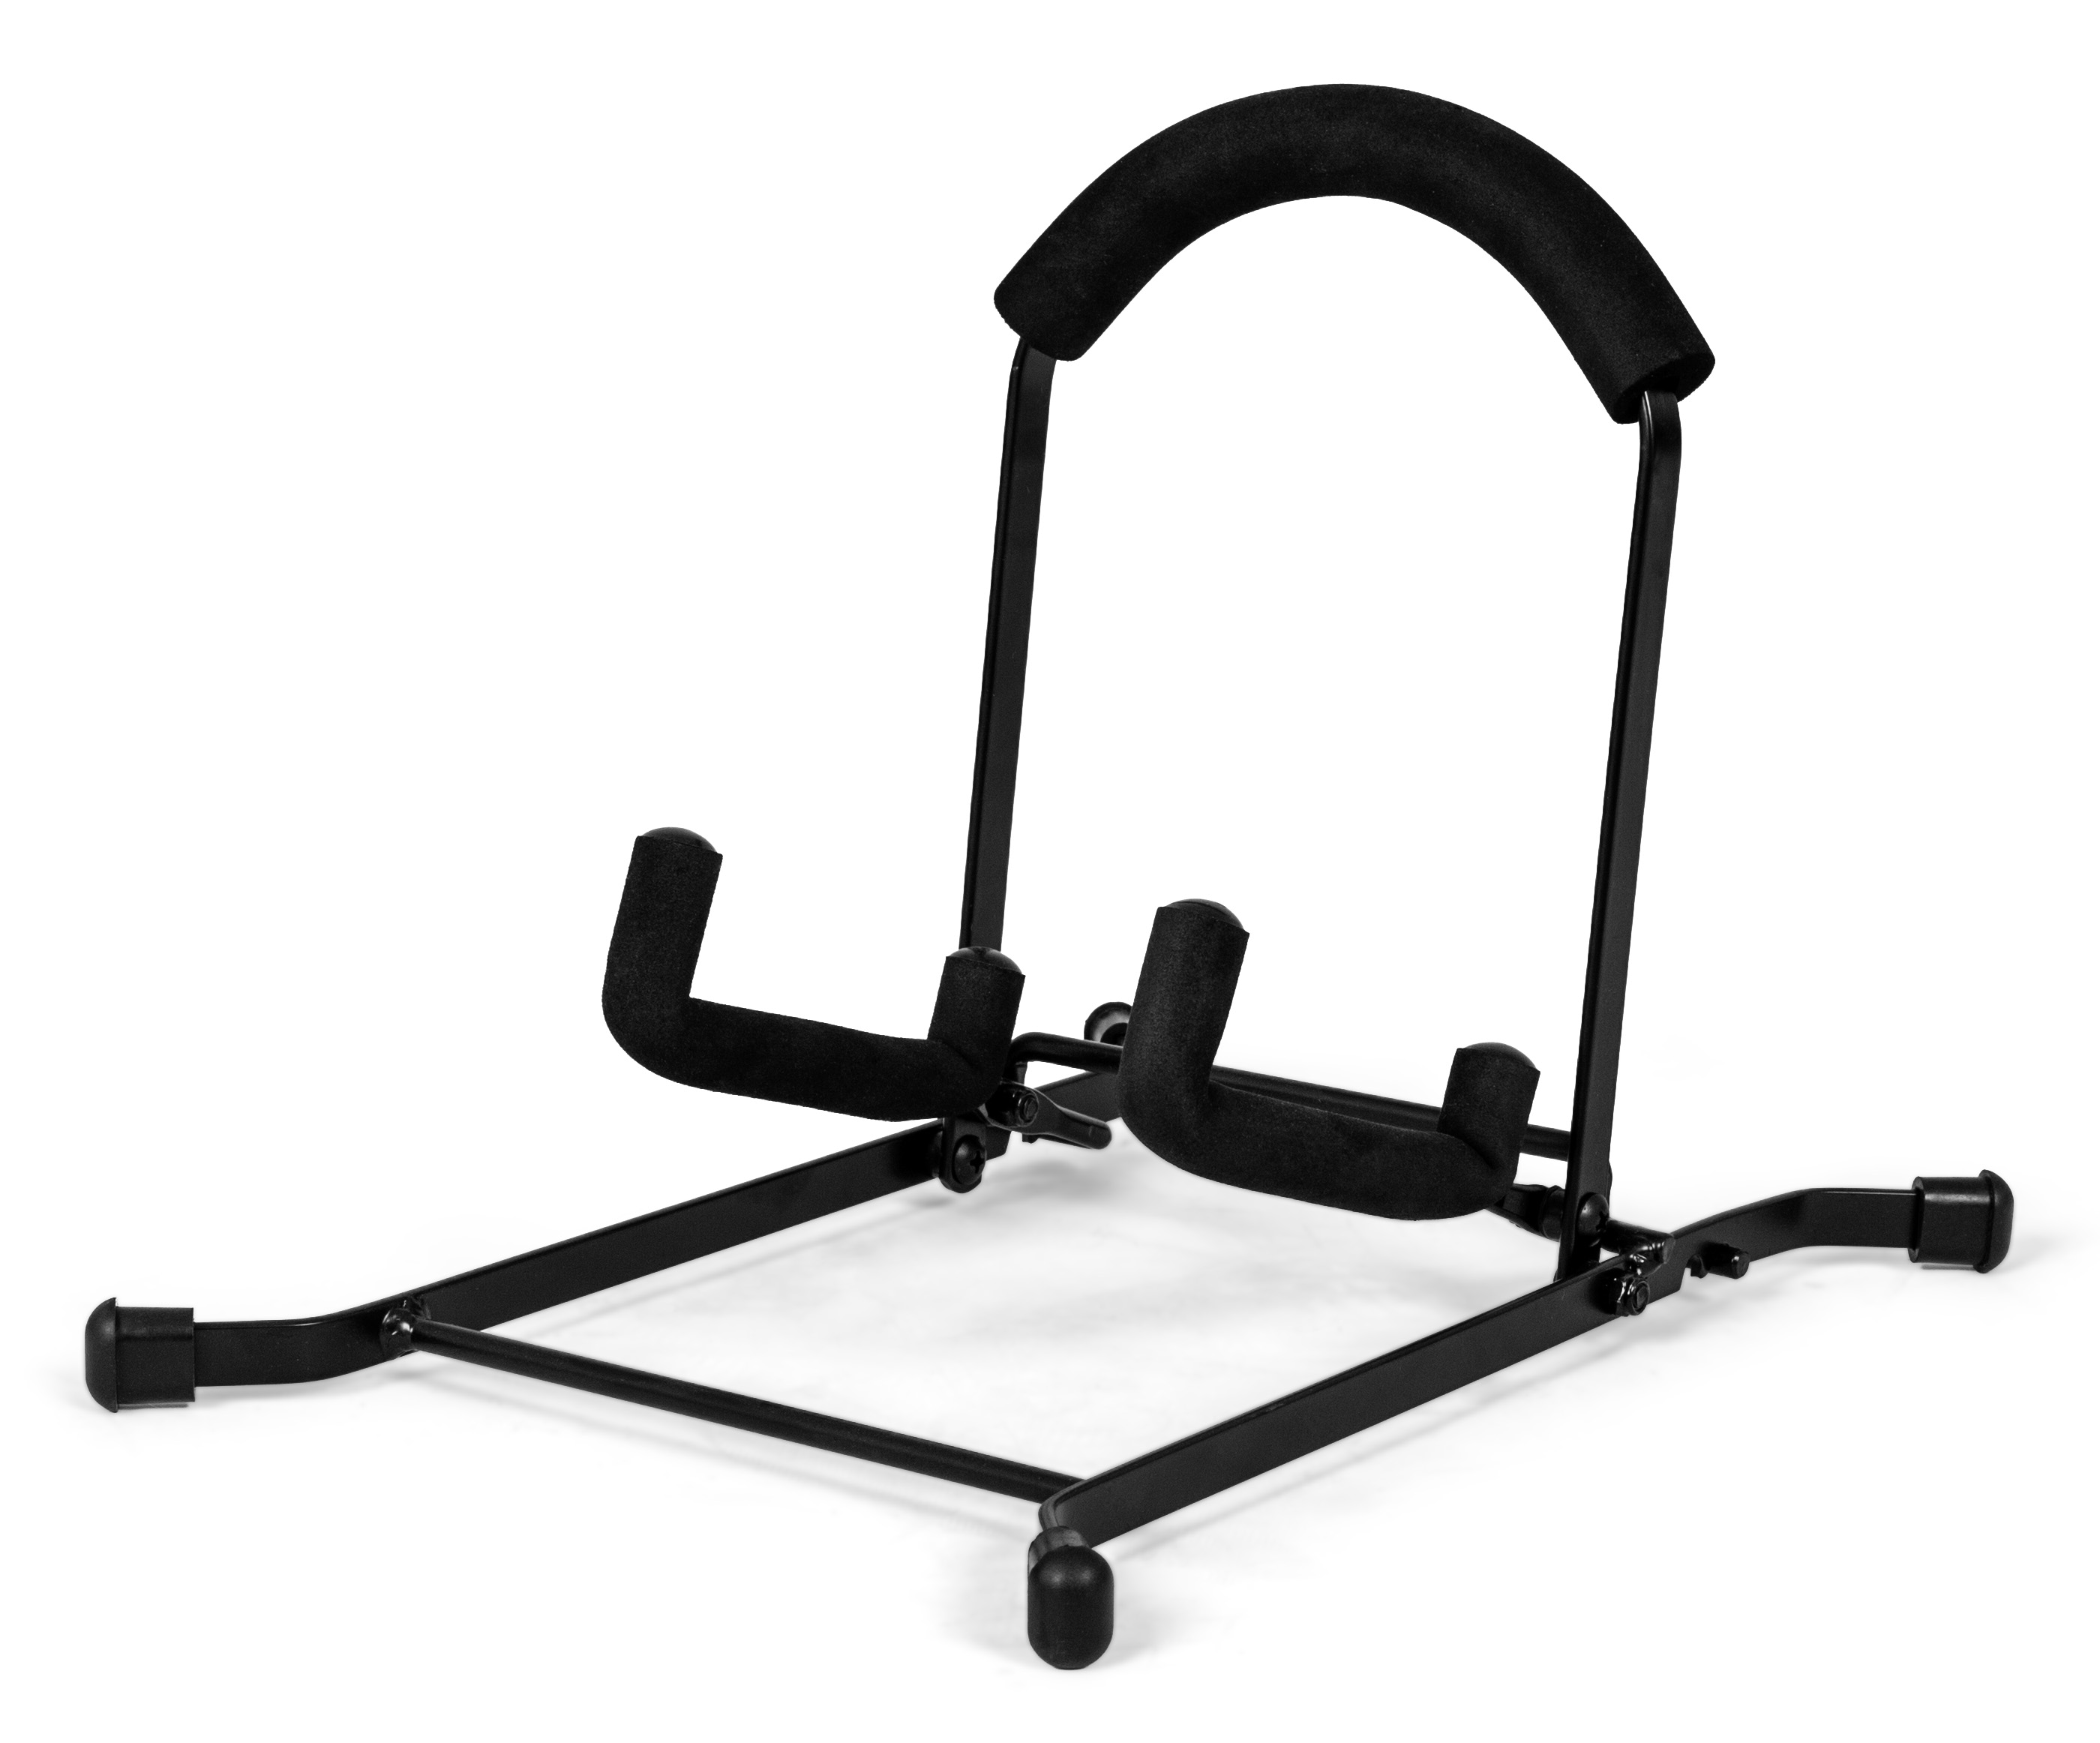 Nomad NGS-2420 Compact Collapsible Acoustic Guitar Stand